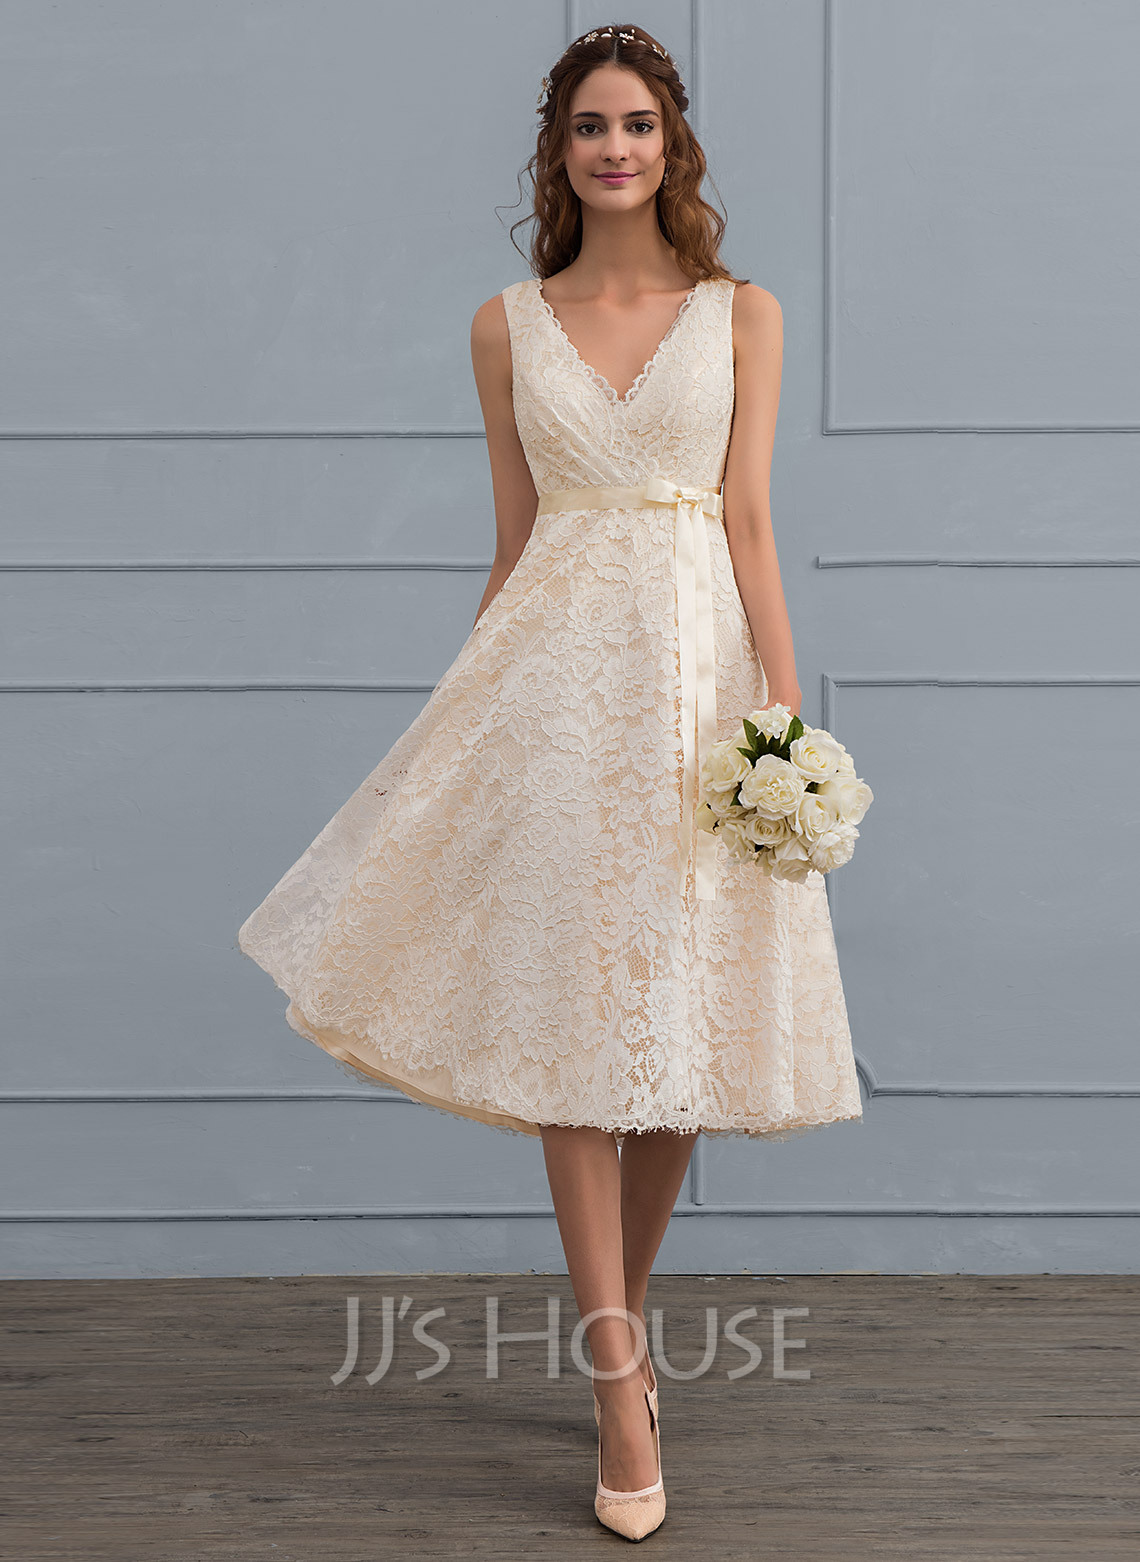 Plus Size Wedding Dresses: Affordable & High Quality | JJ\'sHouse